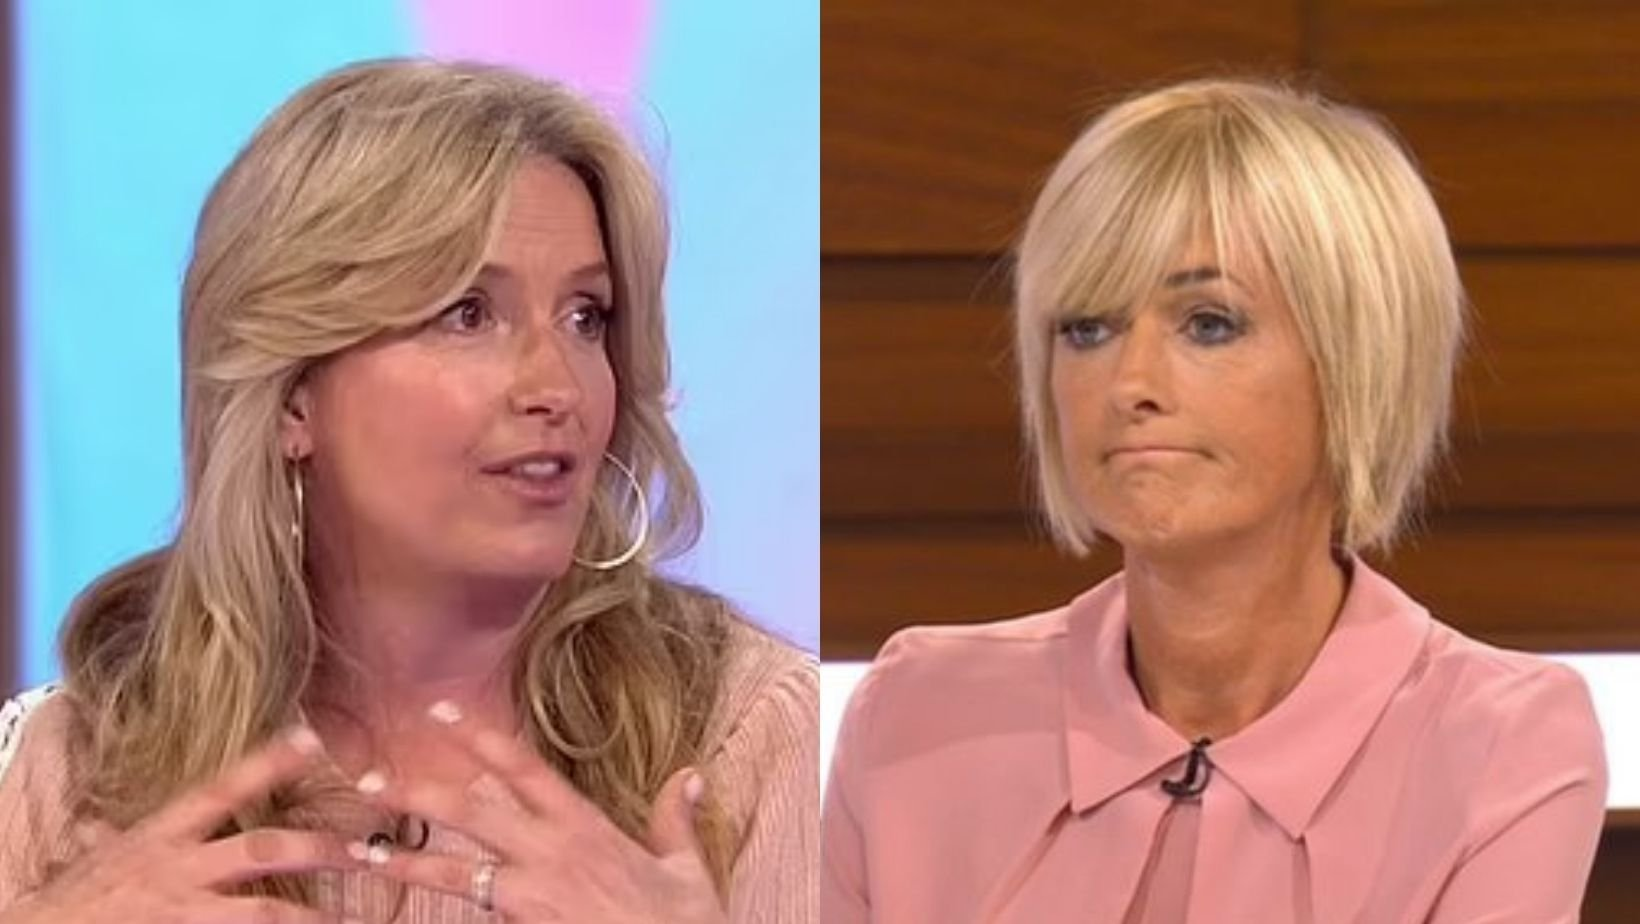 1 81.jpg?resize=1200,630 - TV Show Sparked Online Debate After Host Claims Employers SHOULD NOT Offer Menopause Leave To Women In The Workplace